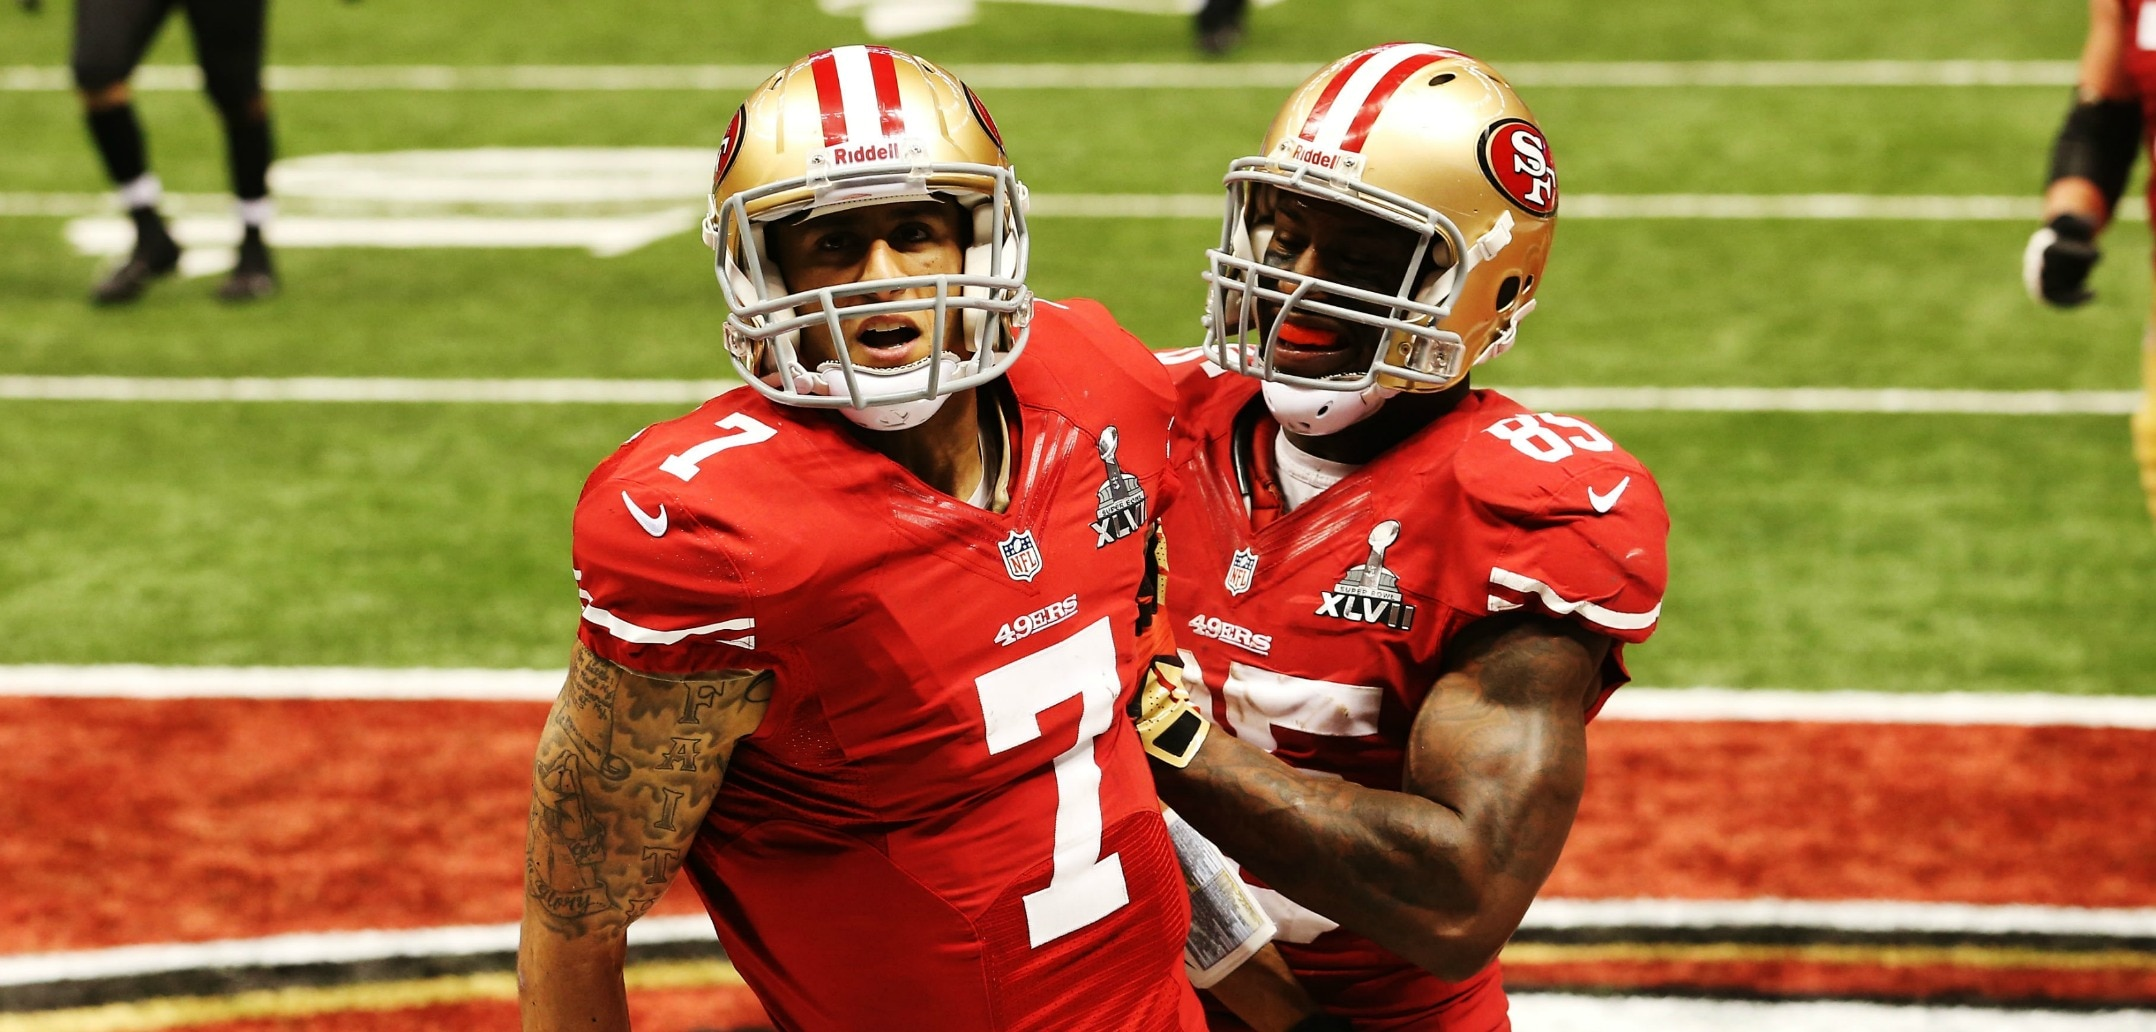 Courtesy of CBS Sports: Losing Kaepernick's dynamic ability would hurt the 49ers big time.